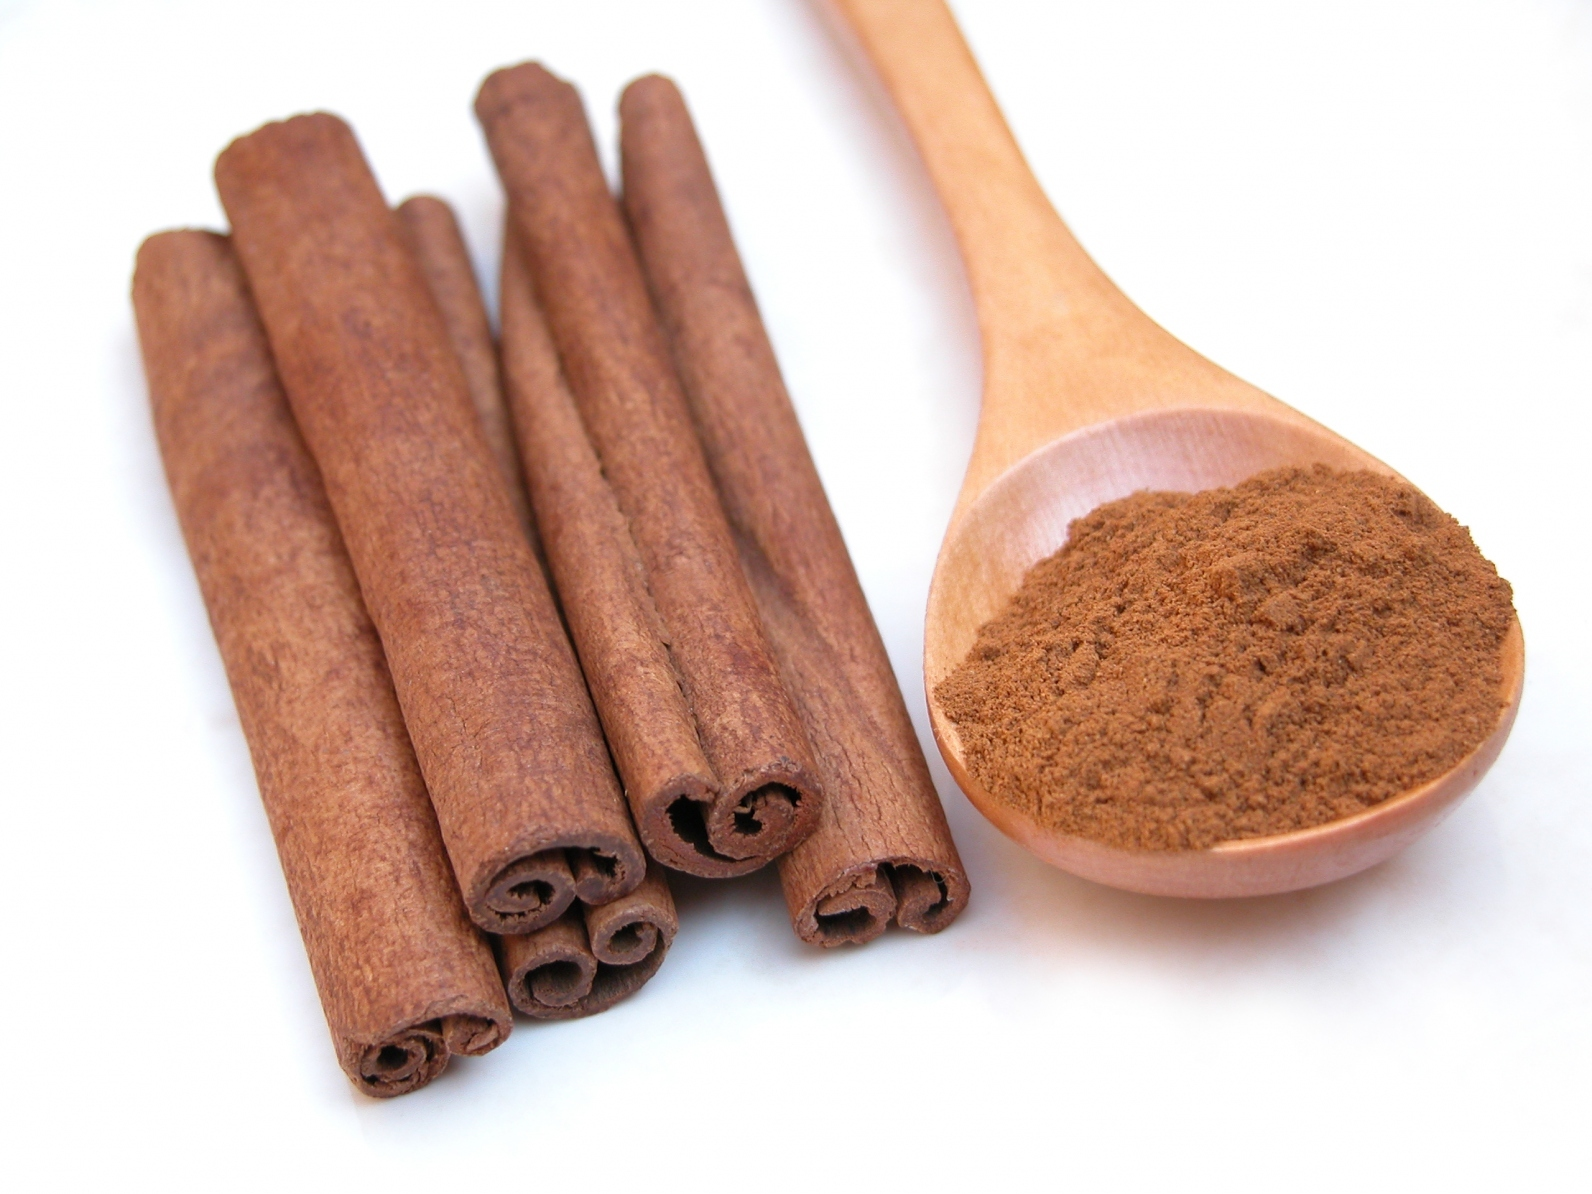 is it just me or have you noticed that cinnamon appears to be a hot ...